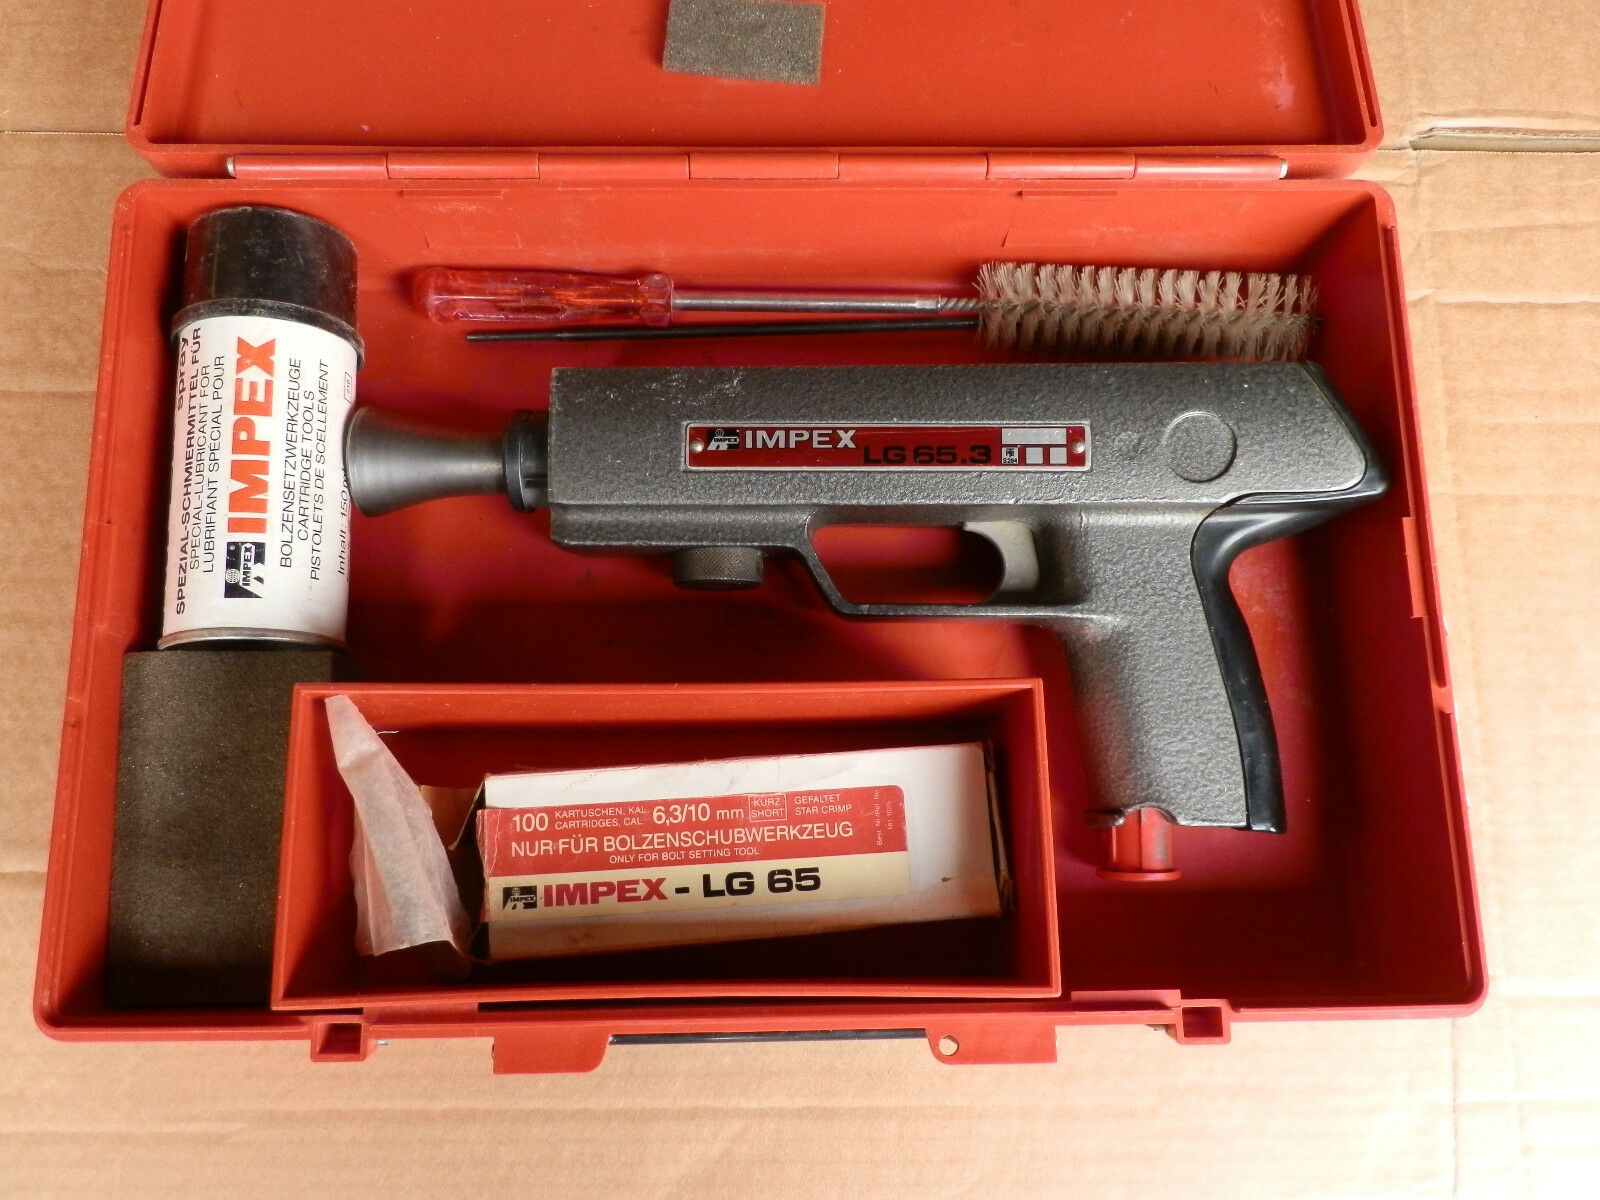 Impex Powder Actuated Bolt Setting Tool LG65.3